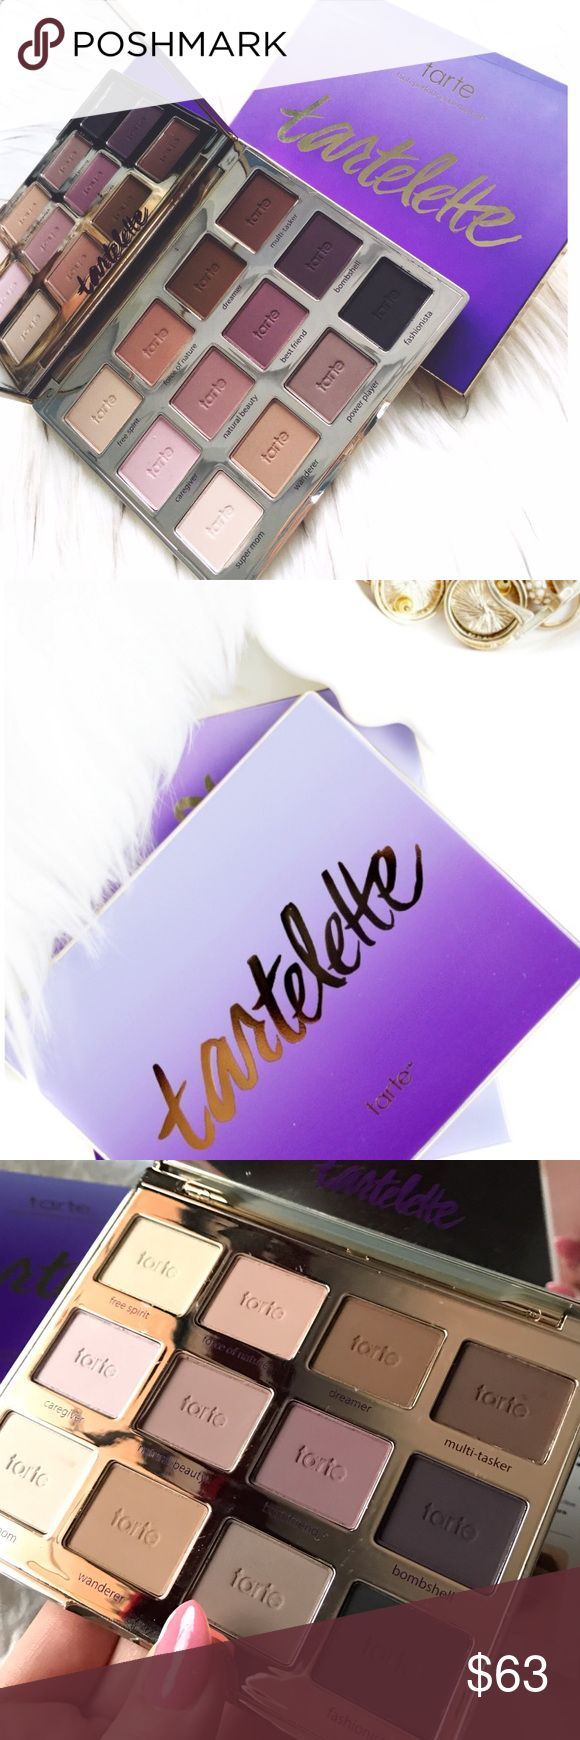 NEW Tartelette Amazonian Clay Eyeshadow Palette Authentic Guaranteed! Tartelette all-matte palette with 12 exclusive eye shadows. What it does: by popular demand, Tarte is introducing an all-matte shadow palette featuring 12 never-before-seen shades to inspire, celebrate, and empower real women. This sleek, palette features Tarte's signature Amazonian clay-infused, long-wear eye shadows in a mix of liner, lid, and crease shadow shades.✨Offers always taken into consideration but please no…